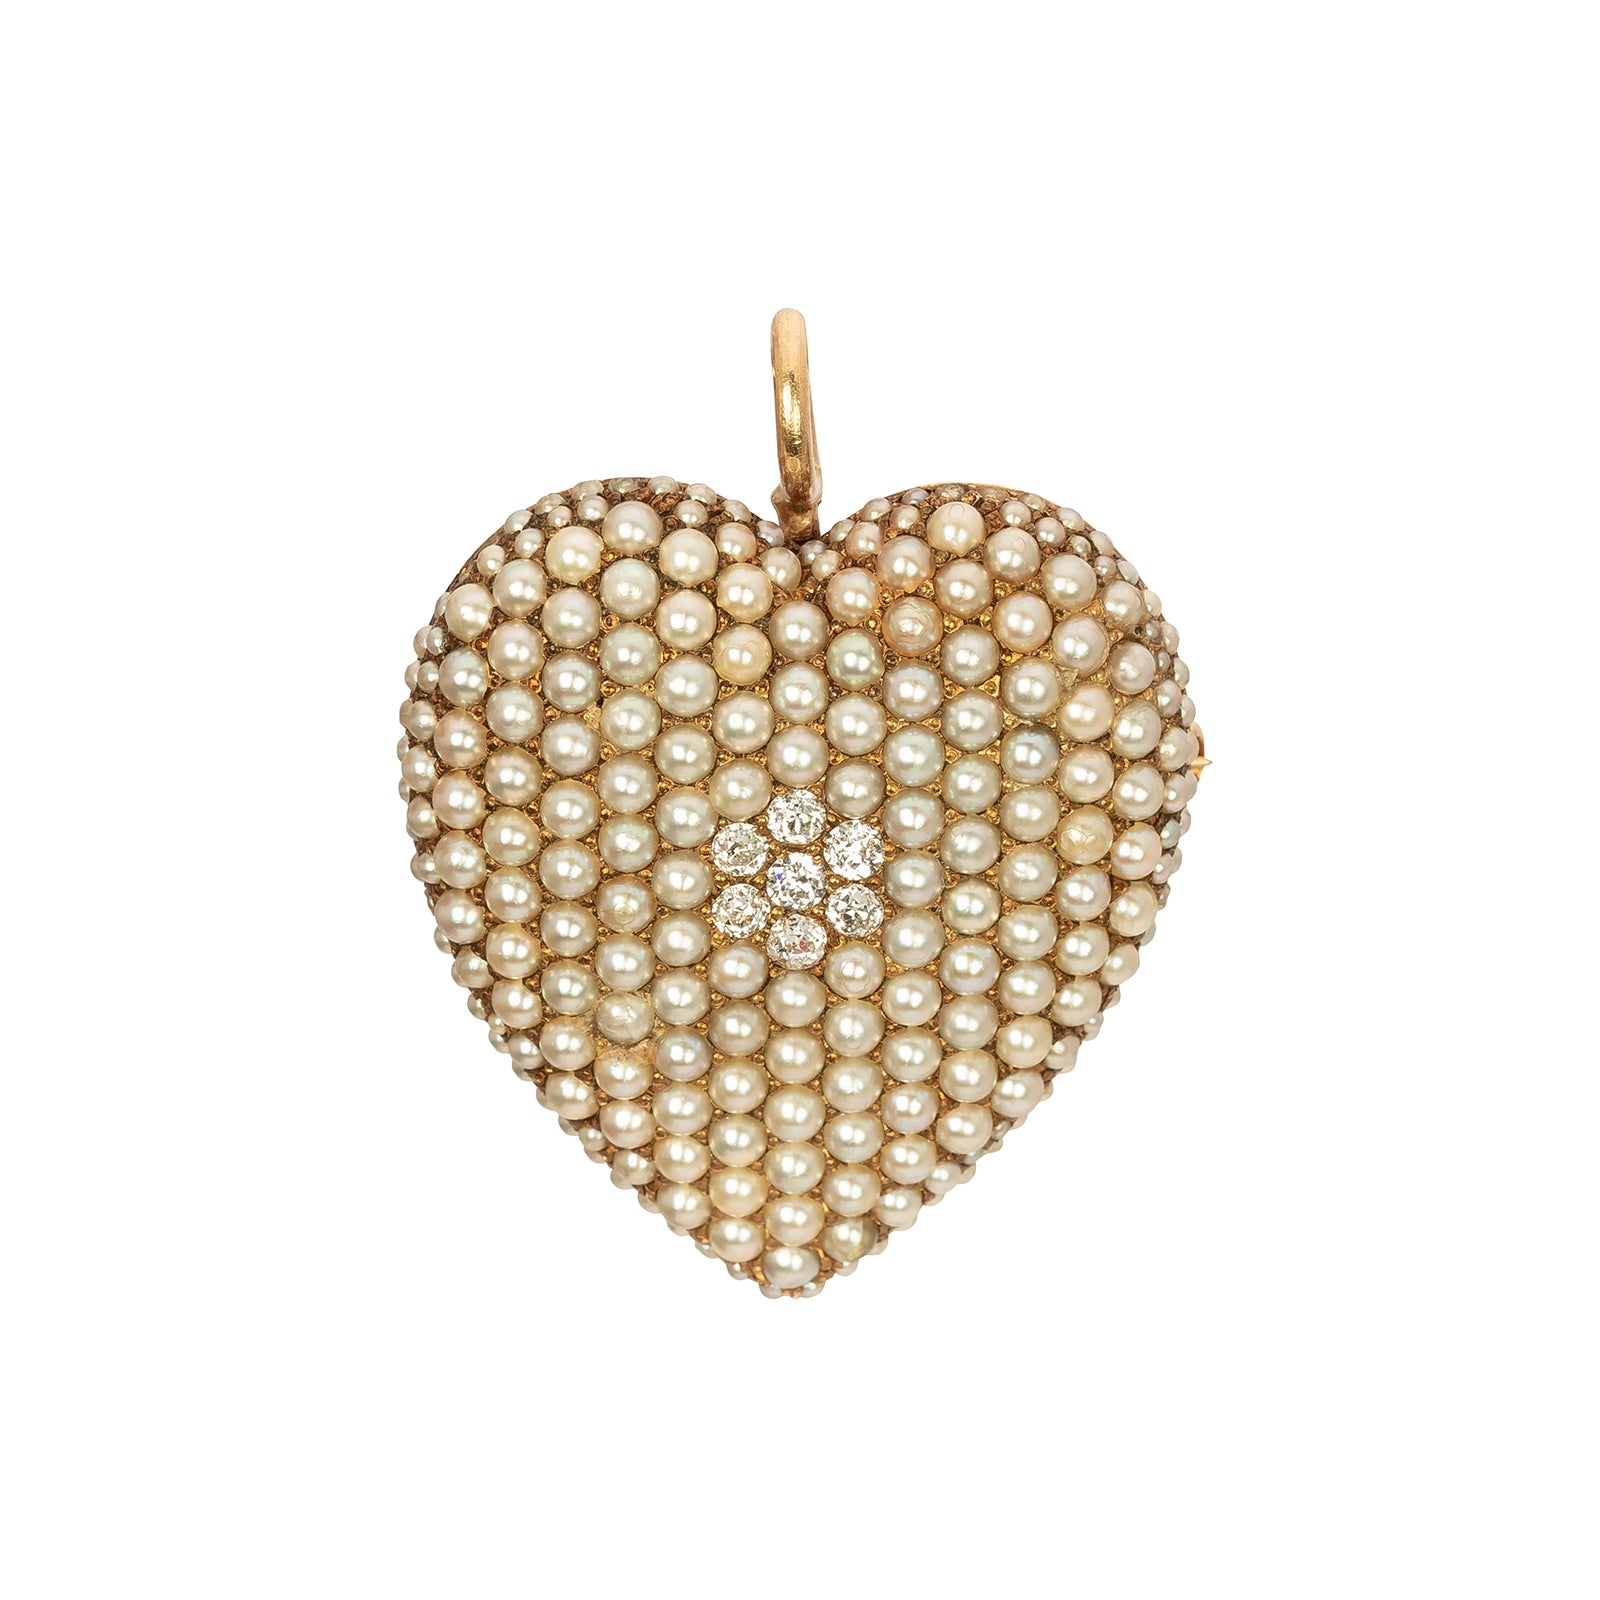 Antique & Vintage Jewelry Heart Shaped Pearl Diamond Pendant & Pin - Charms & Pendants - Broken English Jewelry